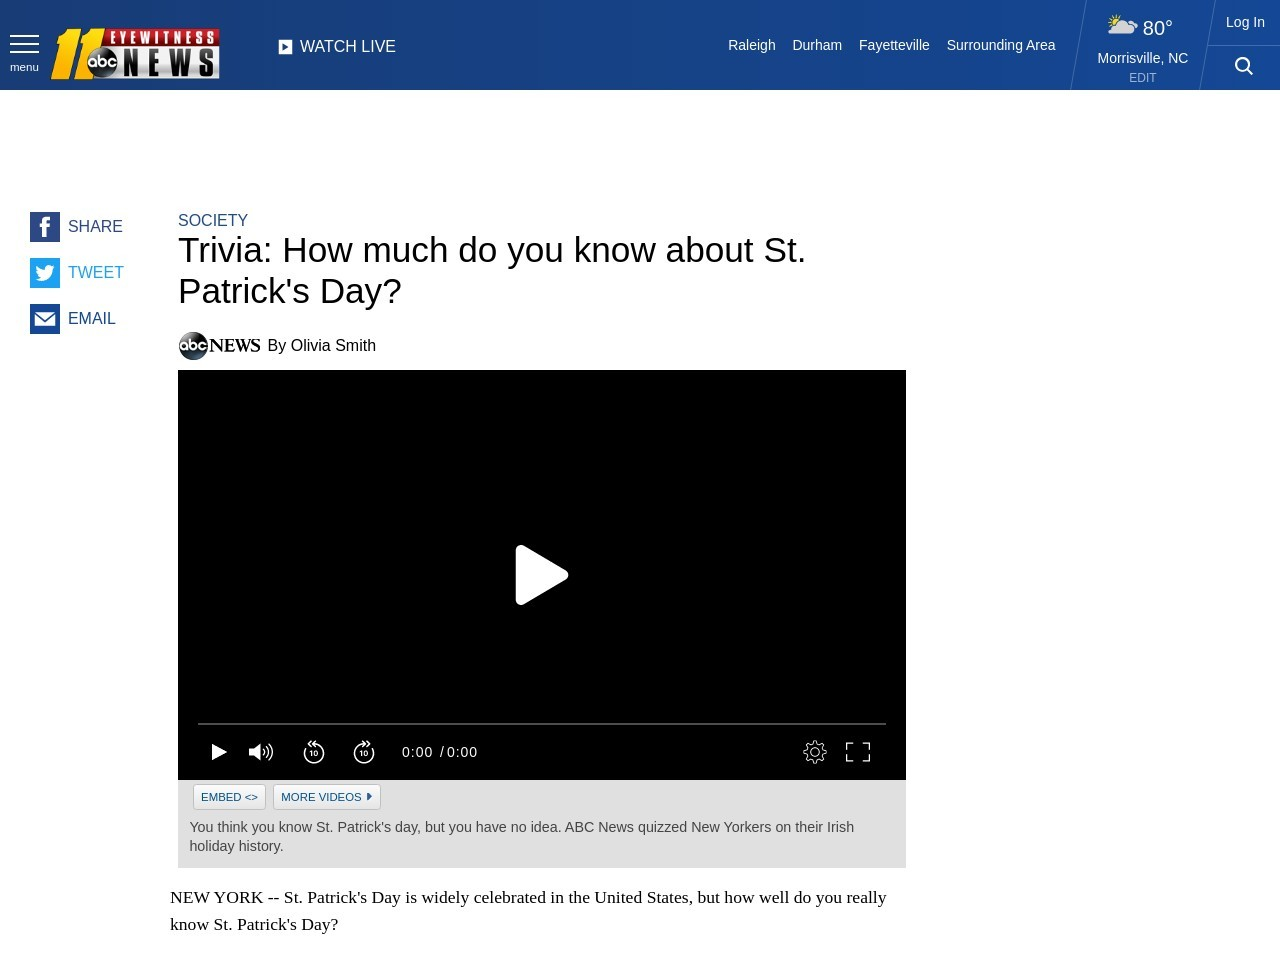 Trivia: How much do you know about St. Patrick's Day?